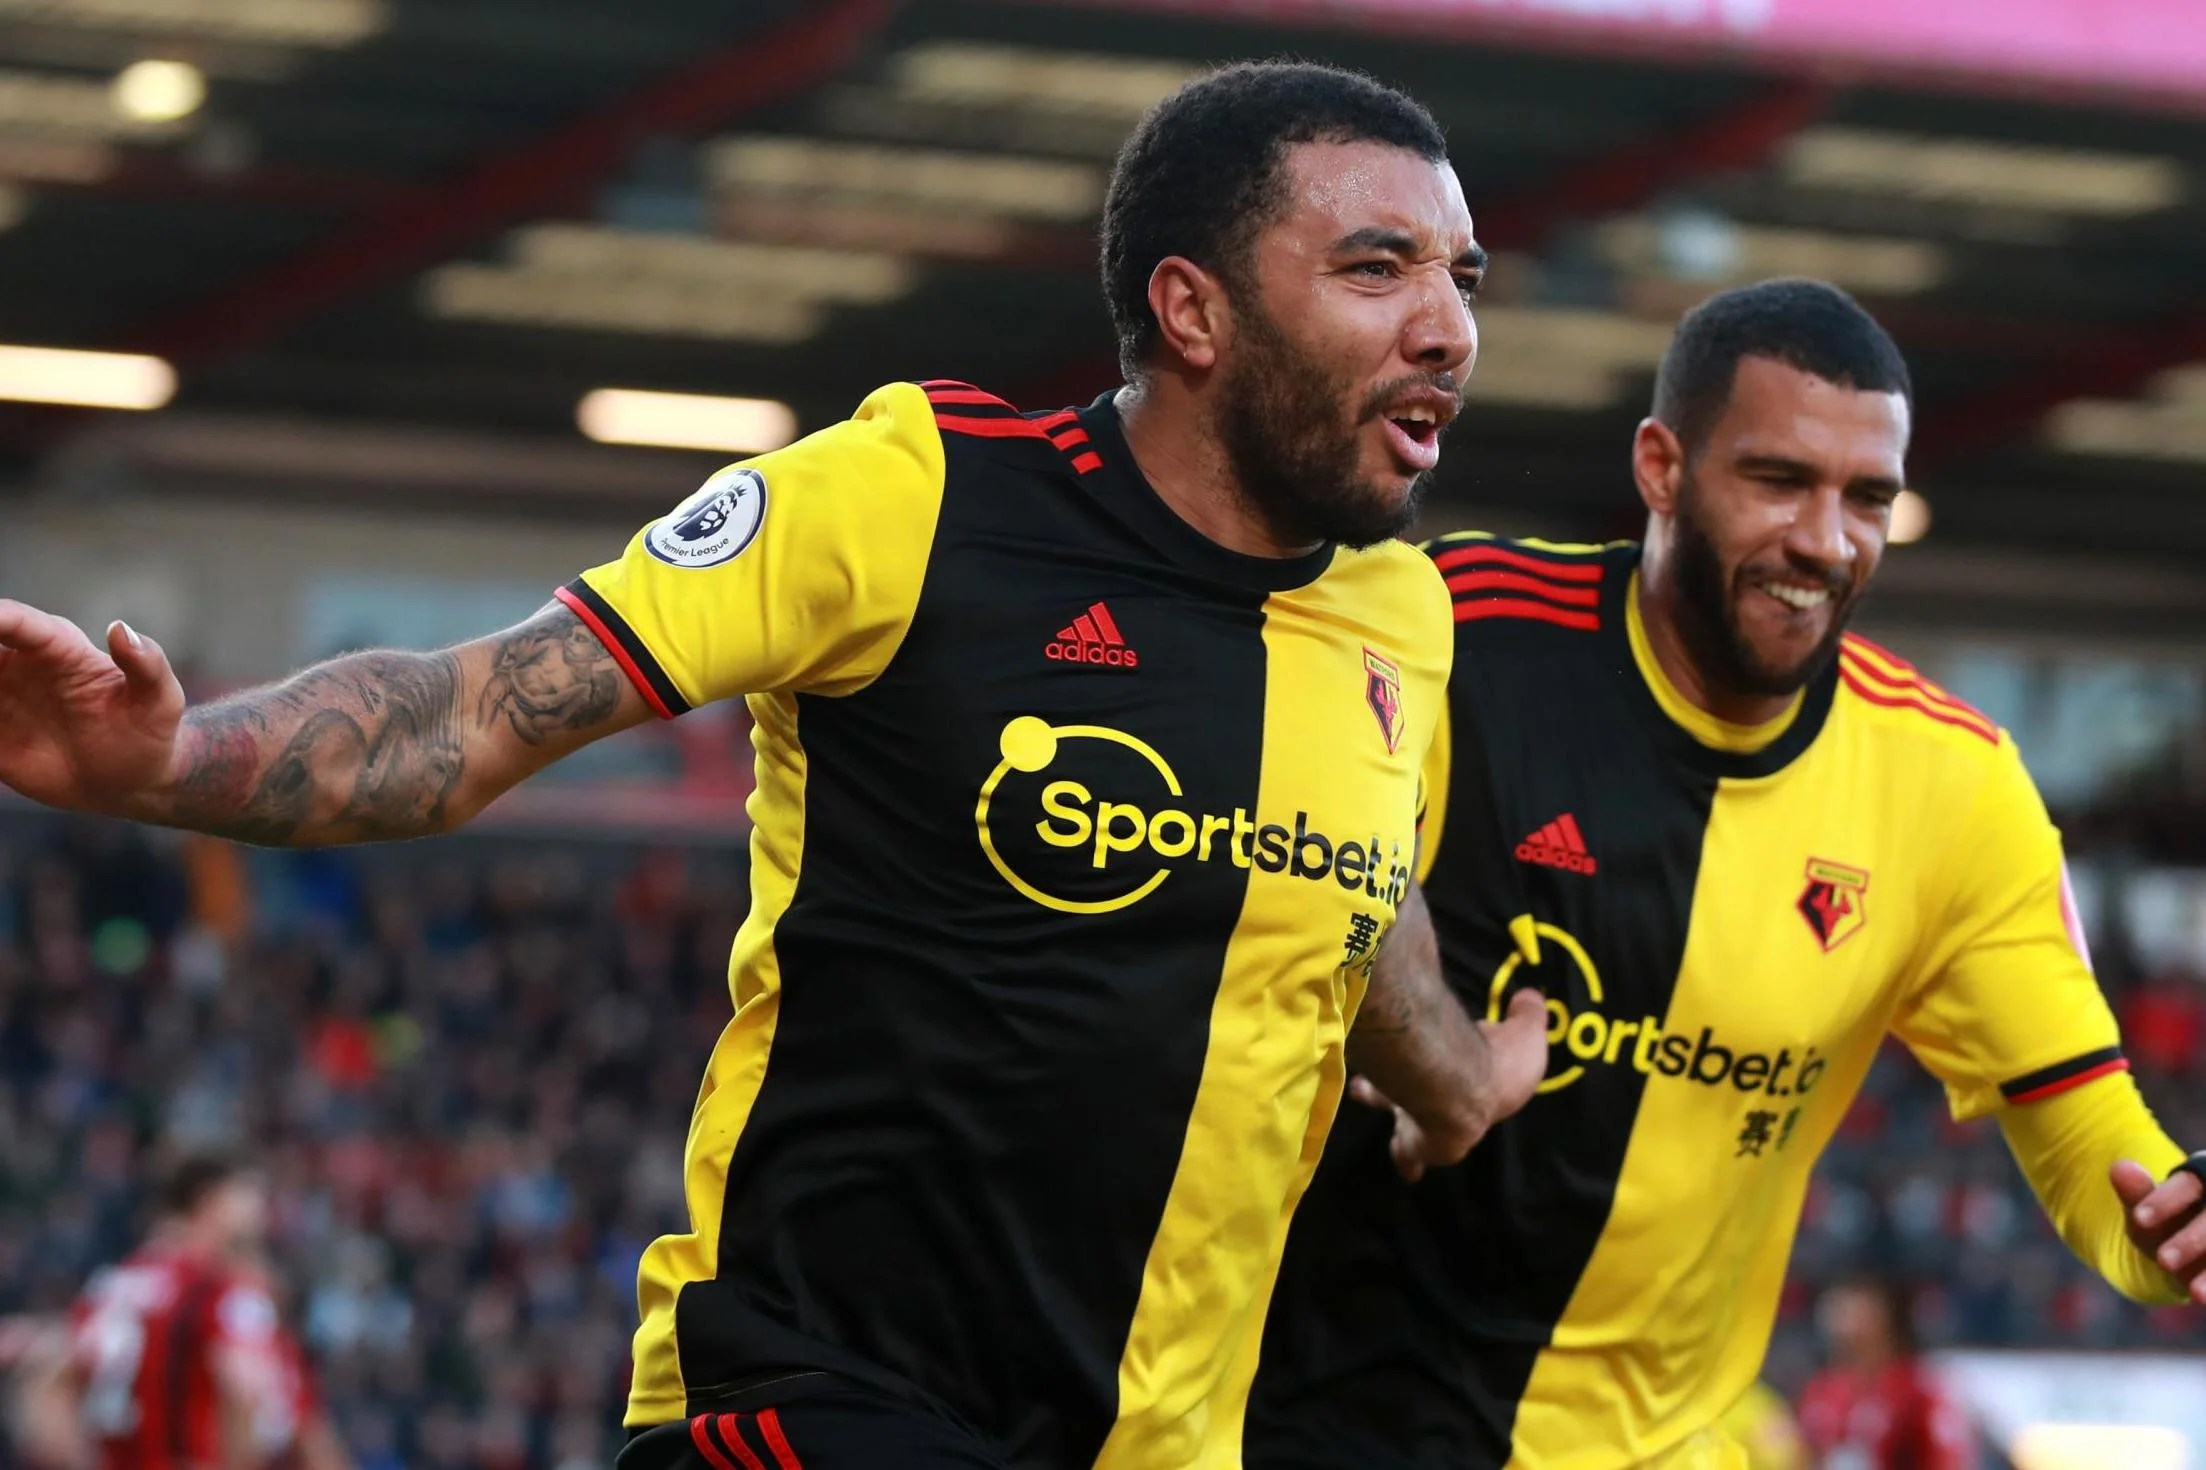 Watford Move Out Of Epl's Bottom Three After Thrashing Bournemouth